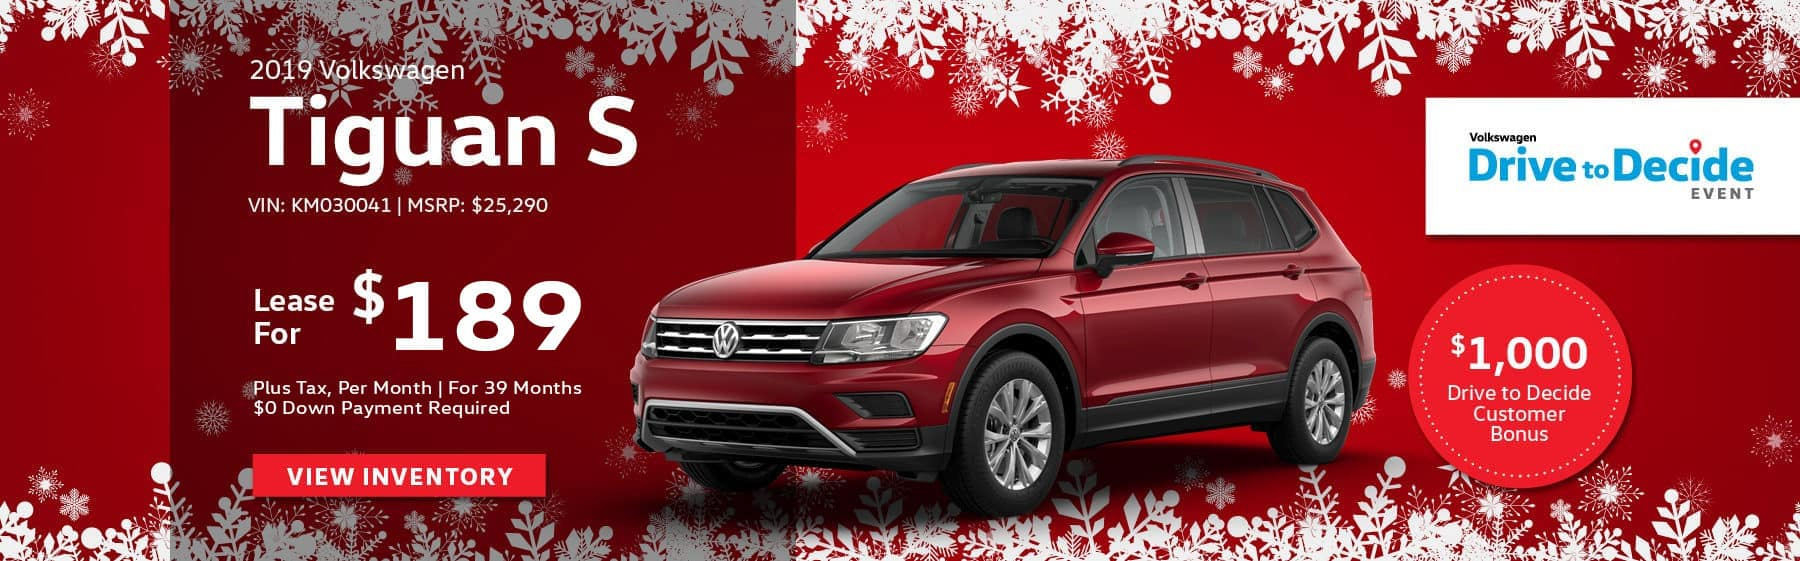 Lease the 2019 Volkswagen Tiguan S for $189 plus tax for 36 months. $0 Down payment required.